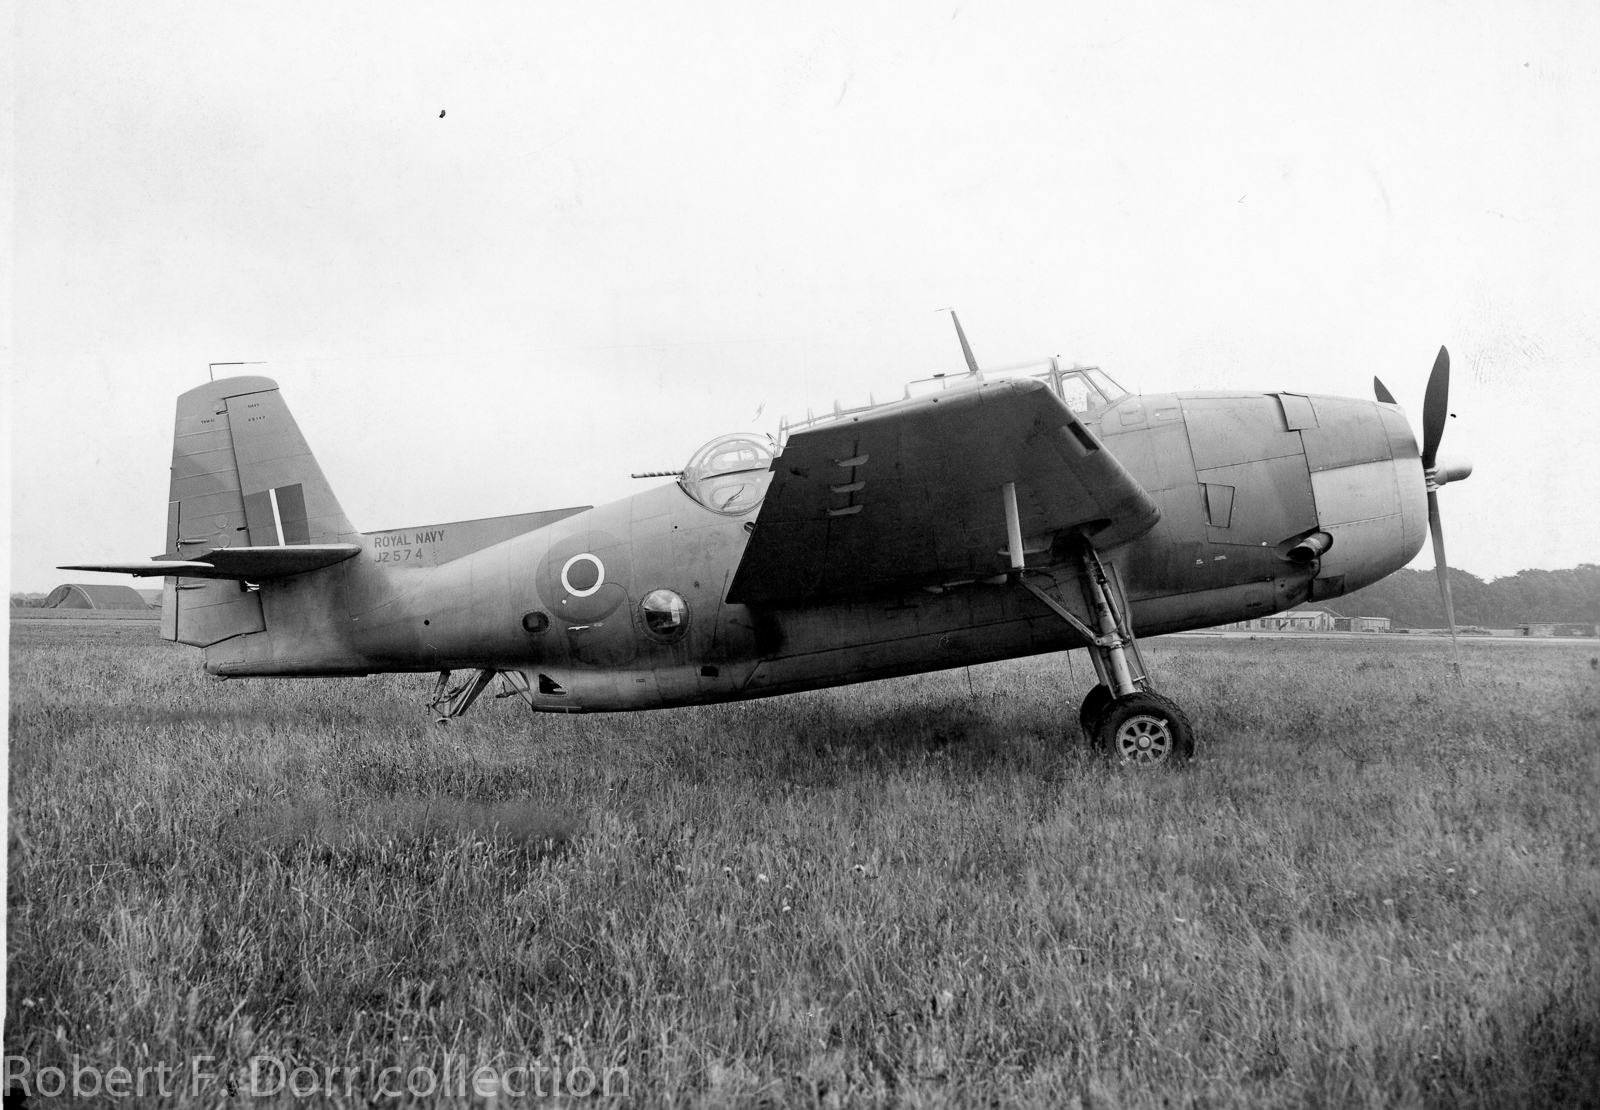 JZ574, an Avenger Mk.II of the Royal Navy's Fleet Air Arm at Boscombe Down, a test establishment in Wiltshire, England. JZ574 served in the Pacific Theatre with 820 Squadron aboard HMS Indefatigable between December 1944 and April, 1945. (photo via Robert F. Dorr collection)